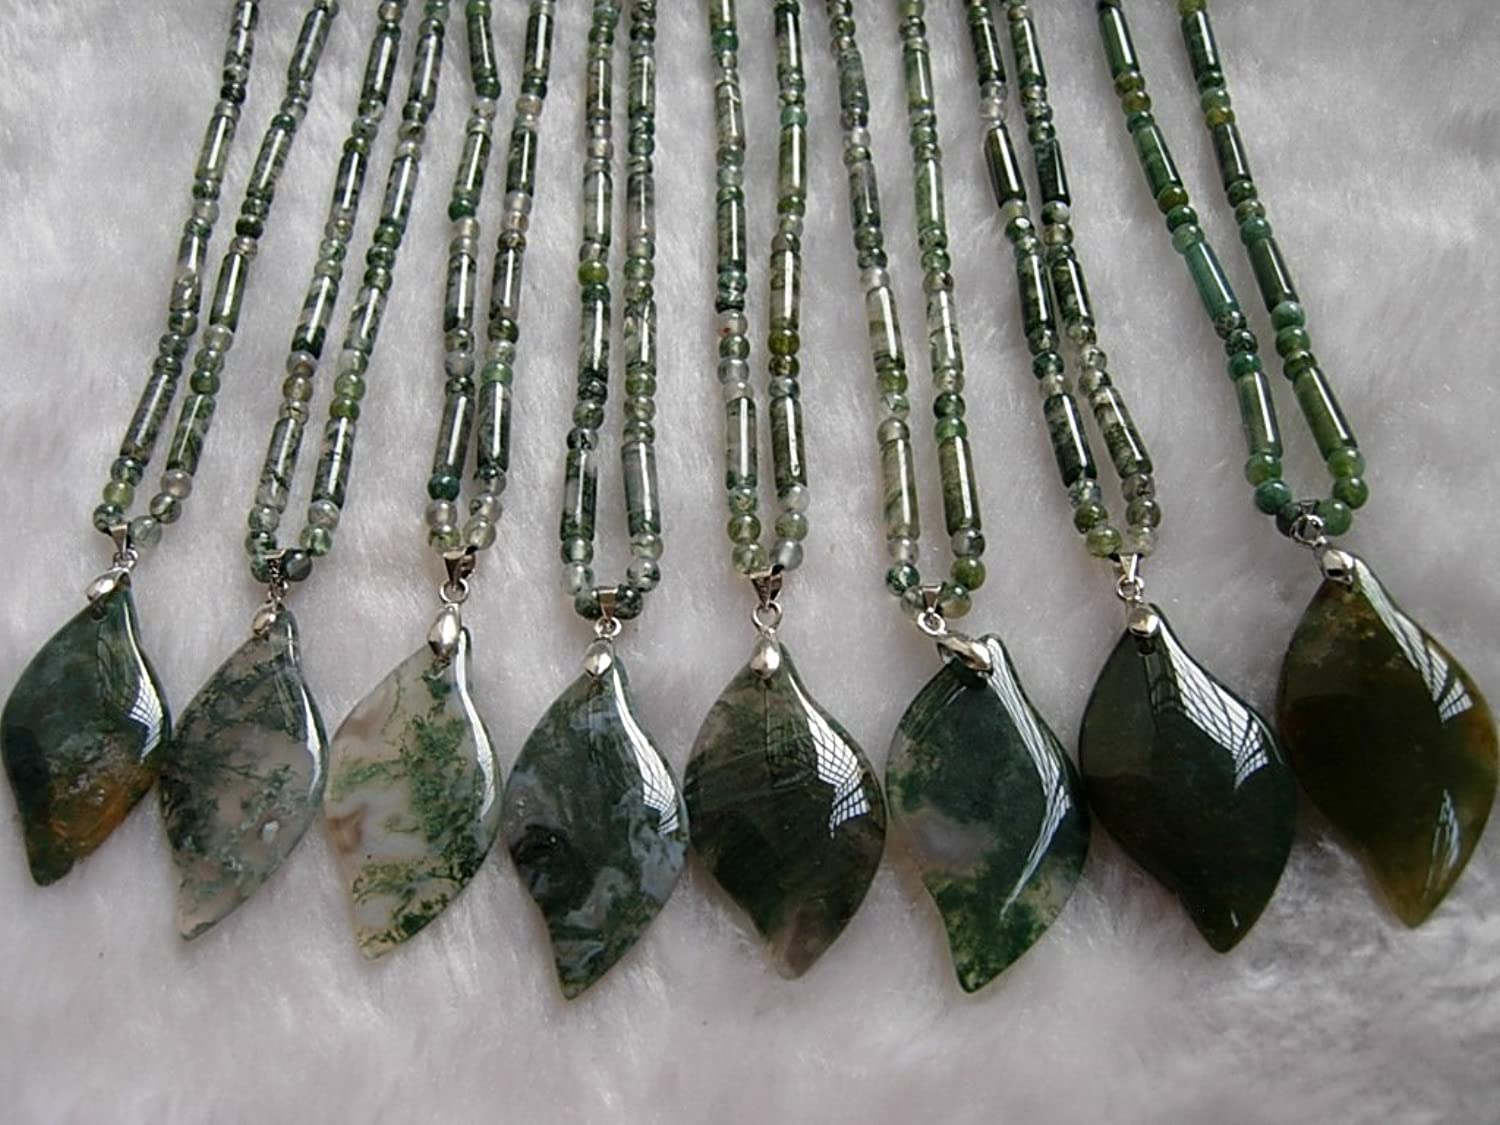 Genuine Natural Plants in India Agate Necklace Pendant + Primary color Natural Clear and Transparent Plants Variety